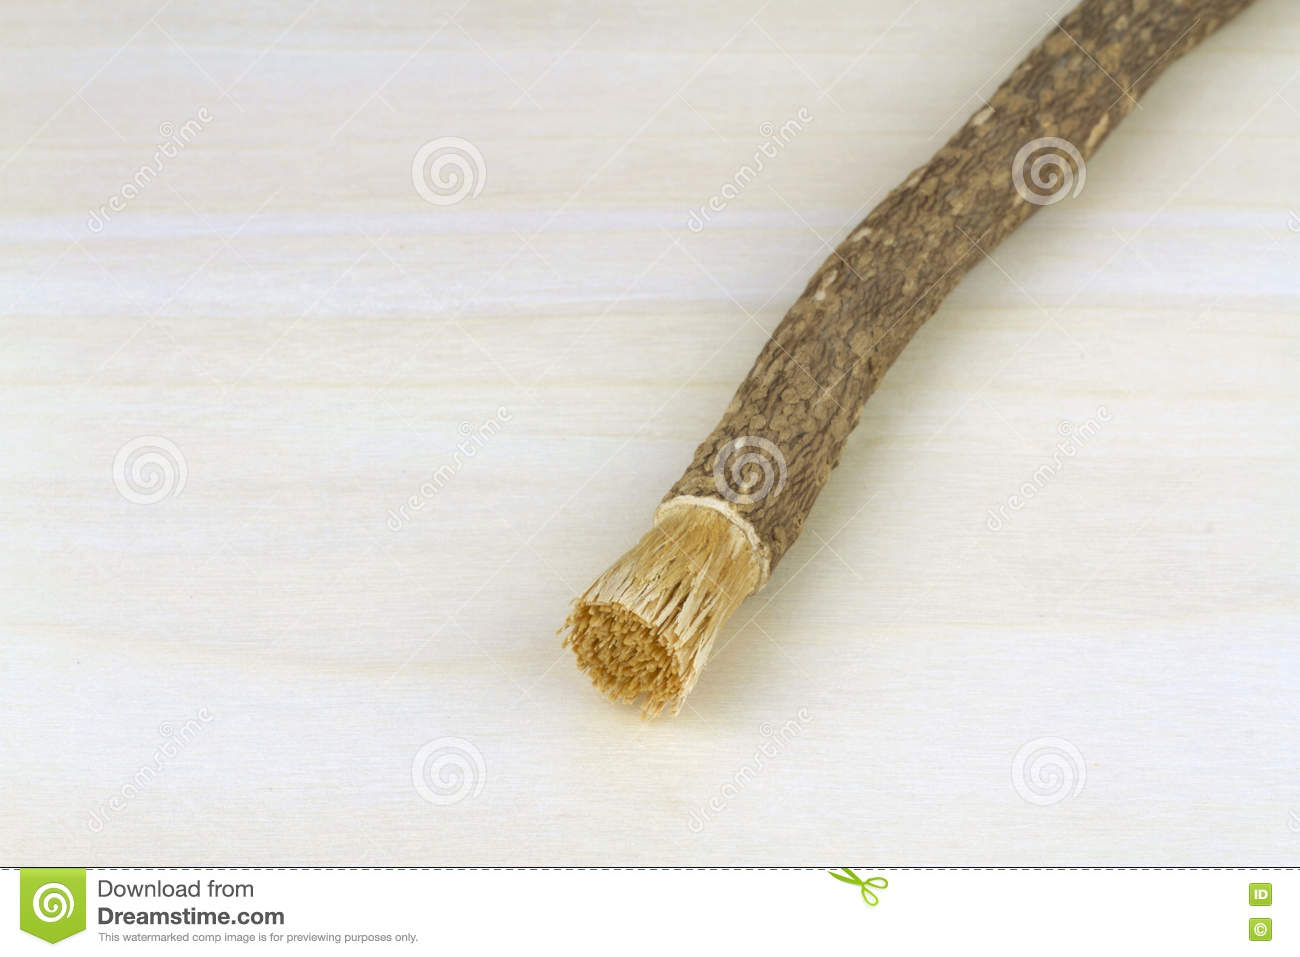 old islamic traditional natural toothbrush miswak or siwak salvadora persica stock image. Black Bedroom Furniture Sets. Home Design Ideas